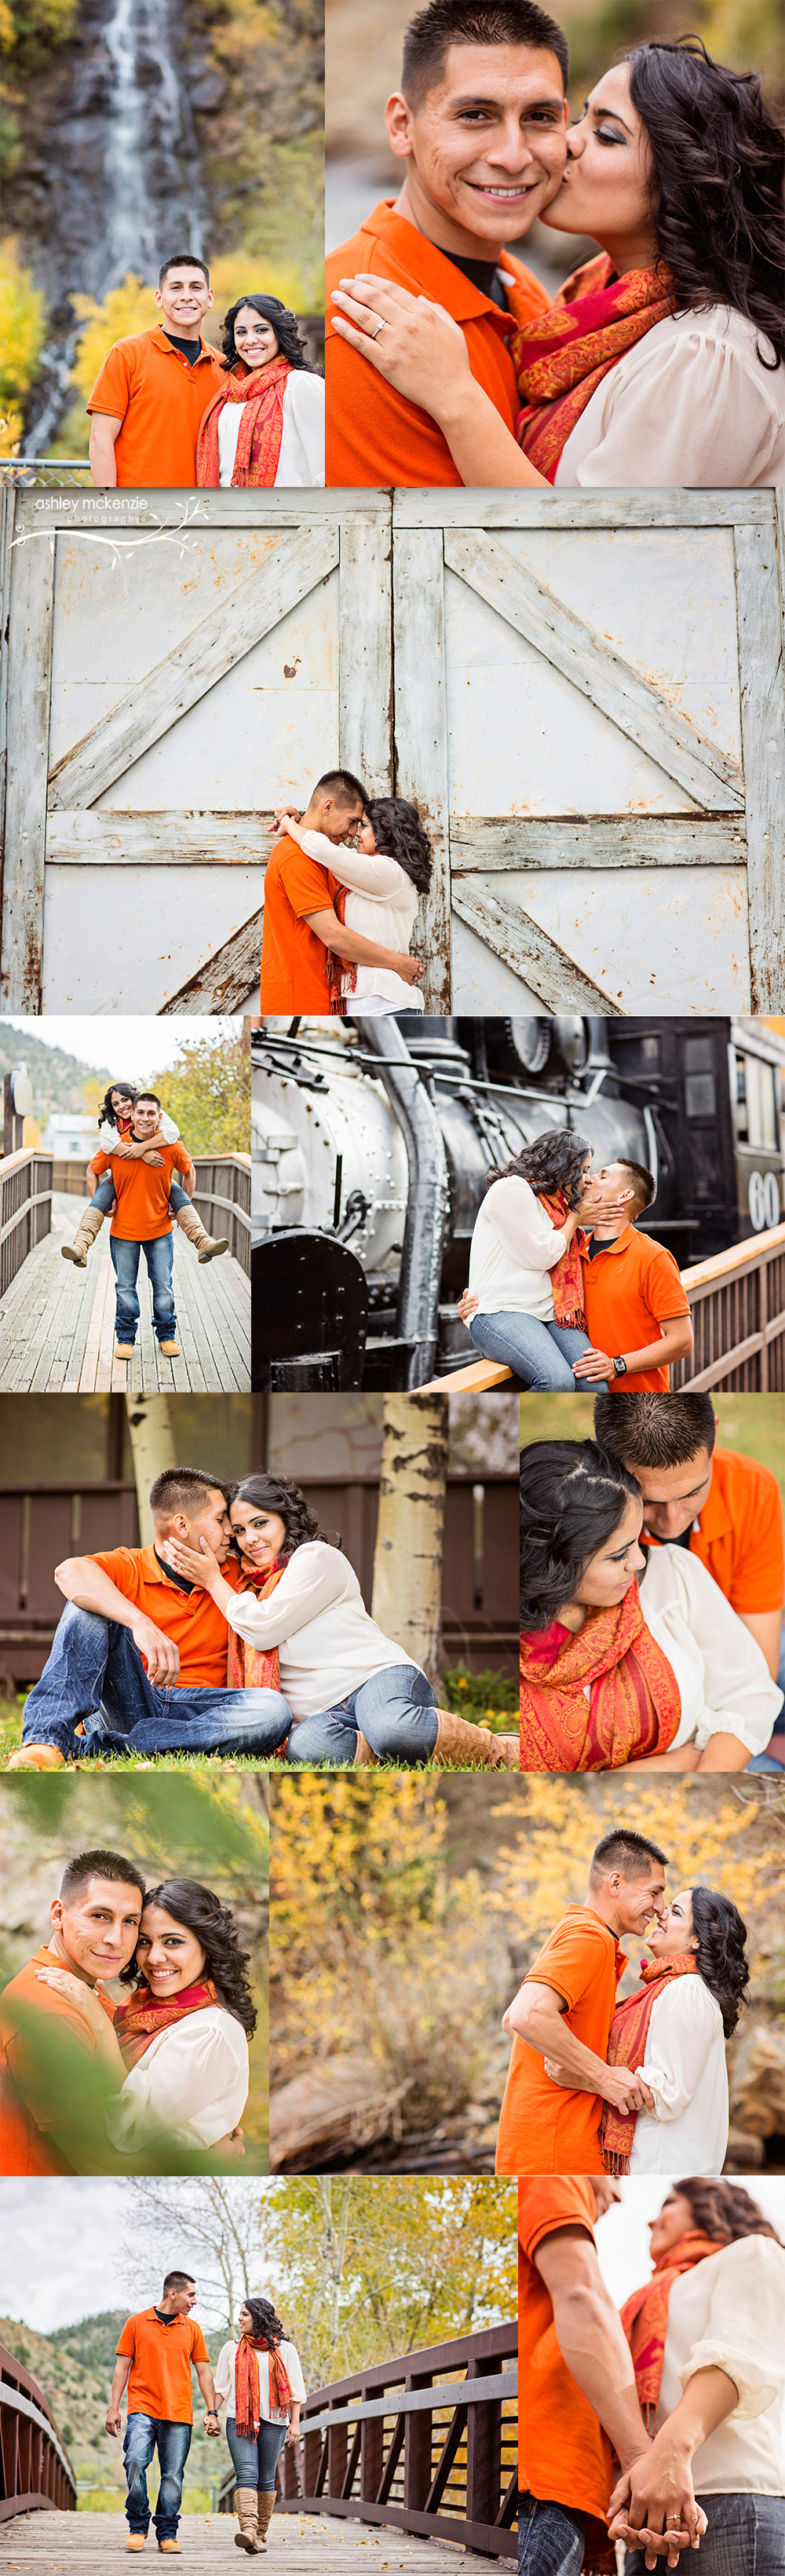 Engagement Photography by Ashley McKenzie Photography in Idaho Springs, CO